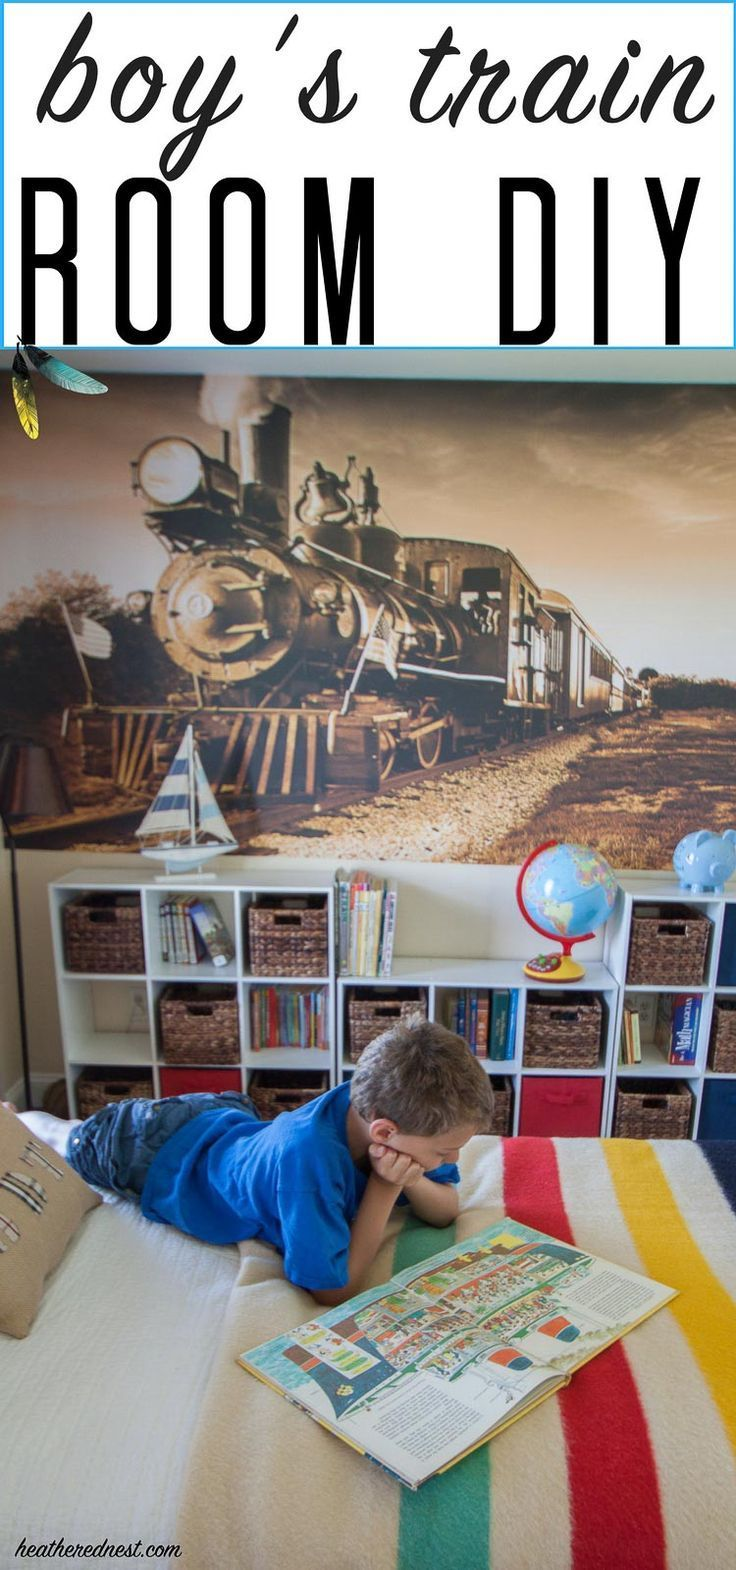 boys DIY room with transportation and train theme from http://heatherednest.com